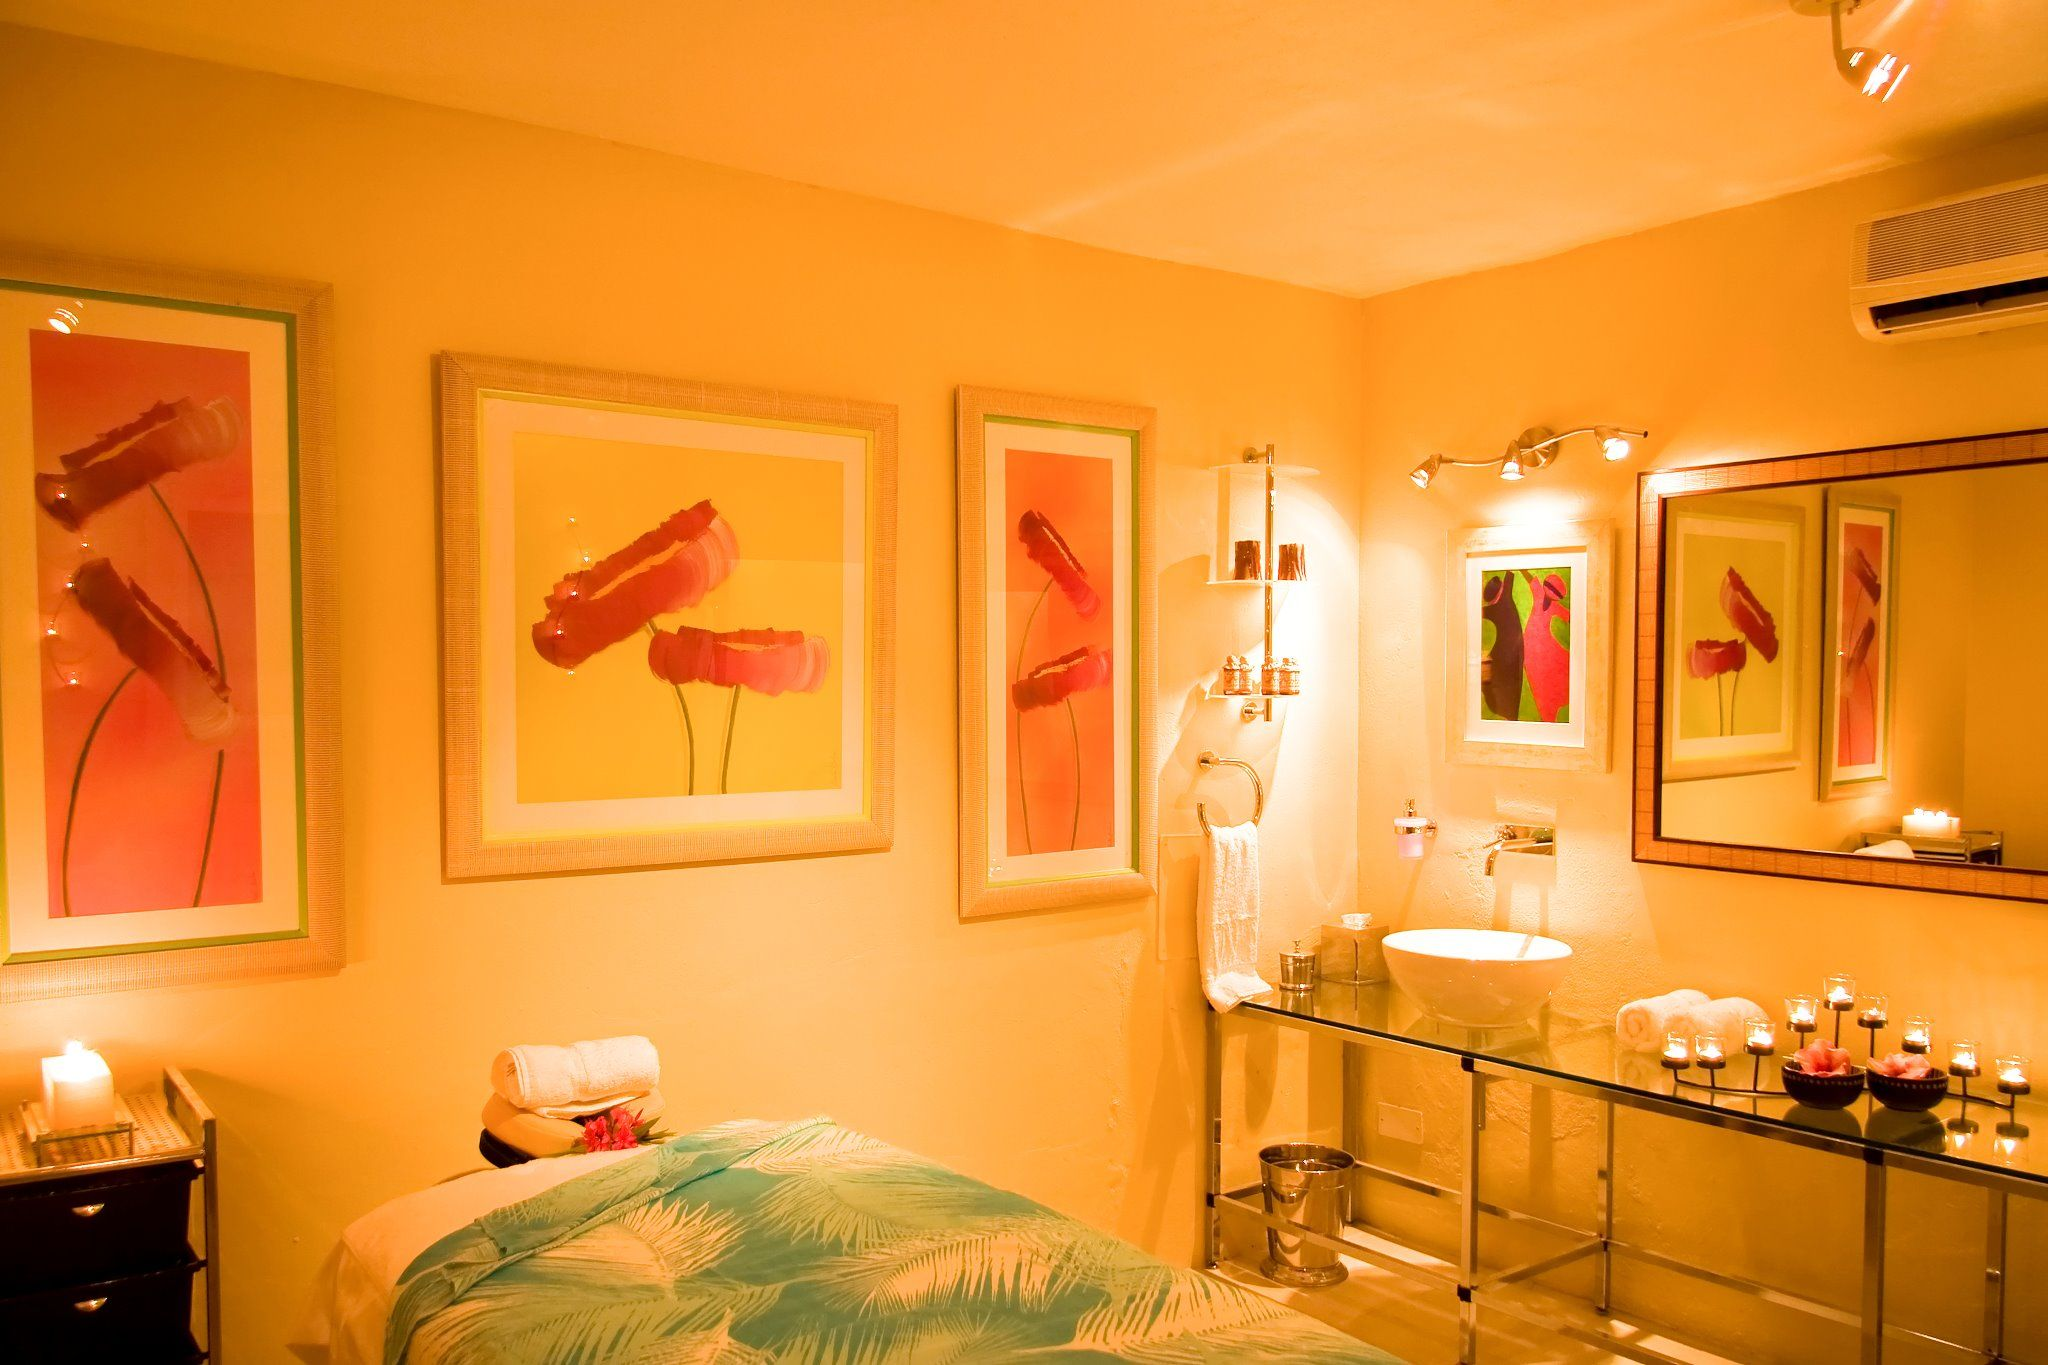 Our Cinnamon Spa offers hot stone massage, facials, body wraps, manicures and pedicures, pampering treatment packages and more that will surely unfurrow your brow.